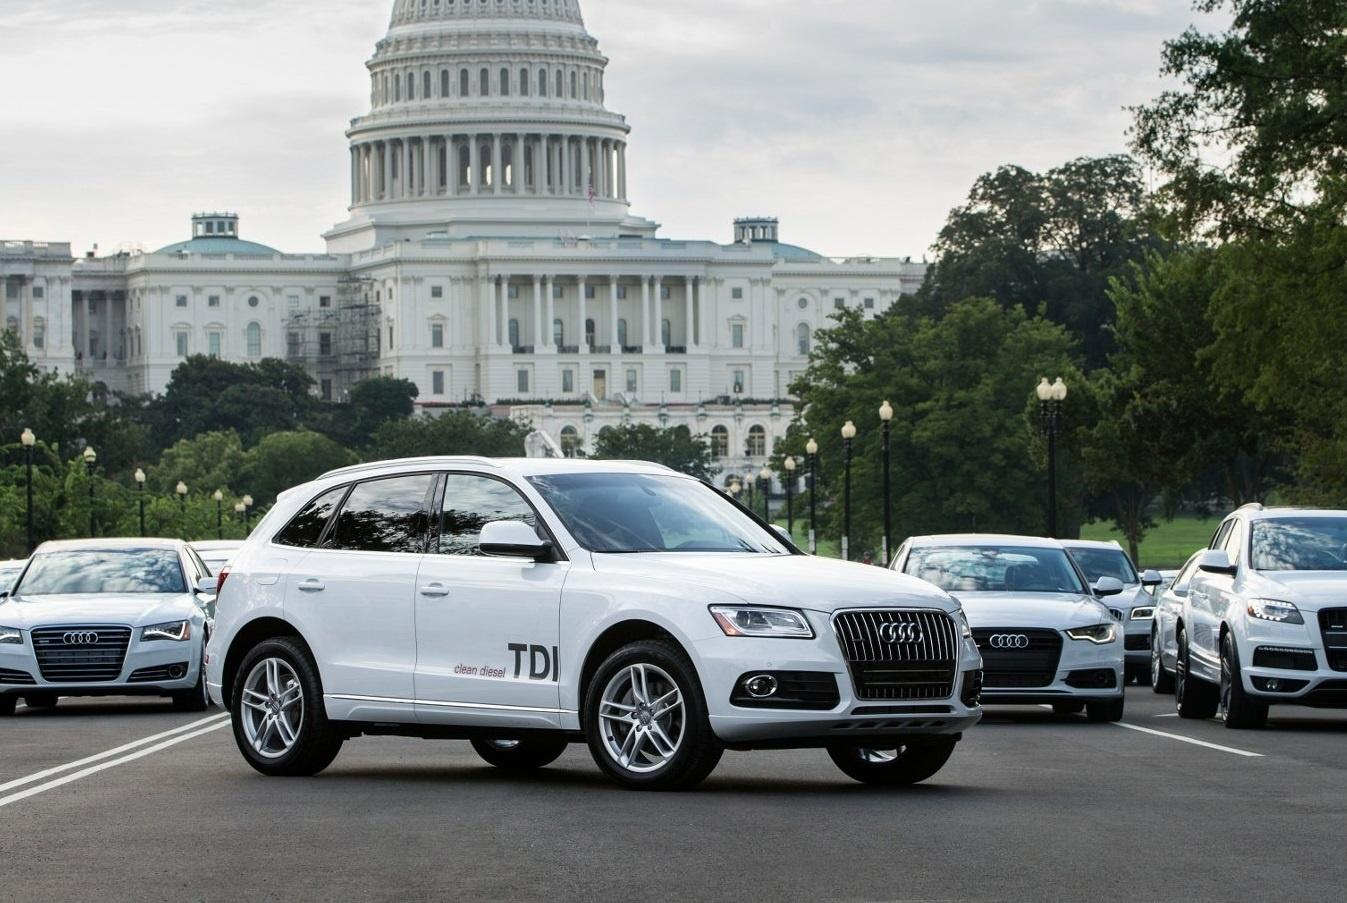 EPA officials find a second defeat device in diesel-powered Audi, VW and Porsche models